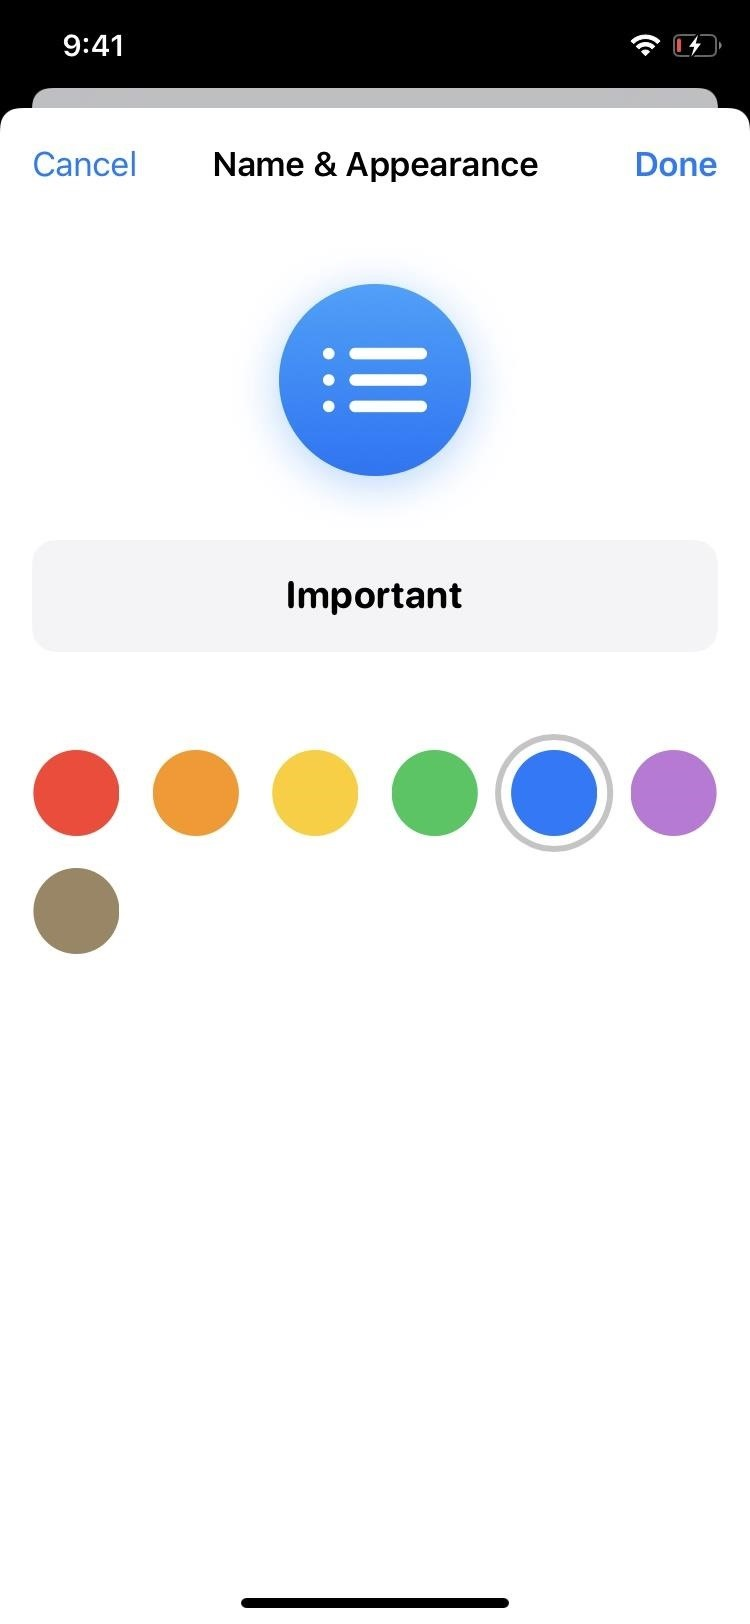 15 New 'Reminders' Features in iOS 13 That'll Make You Actually Want to Use the App